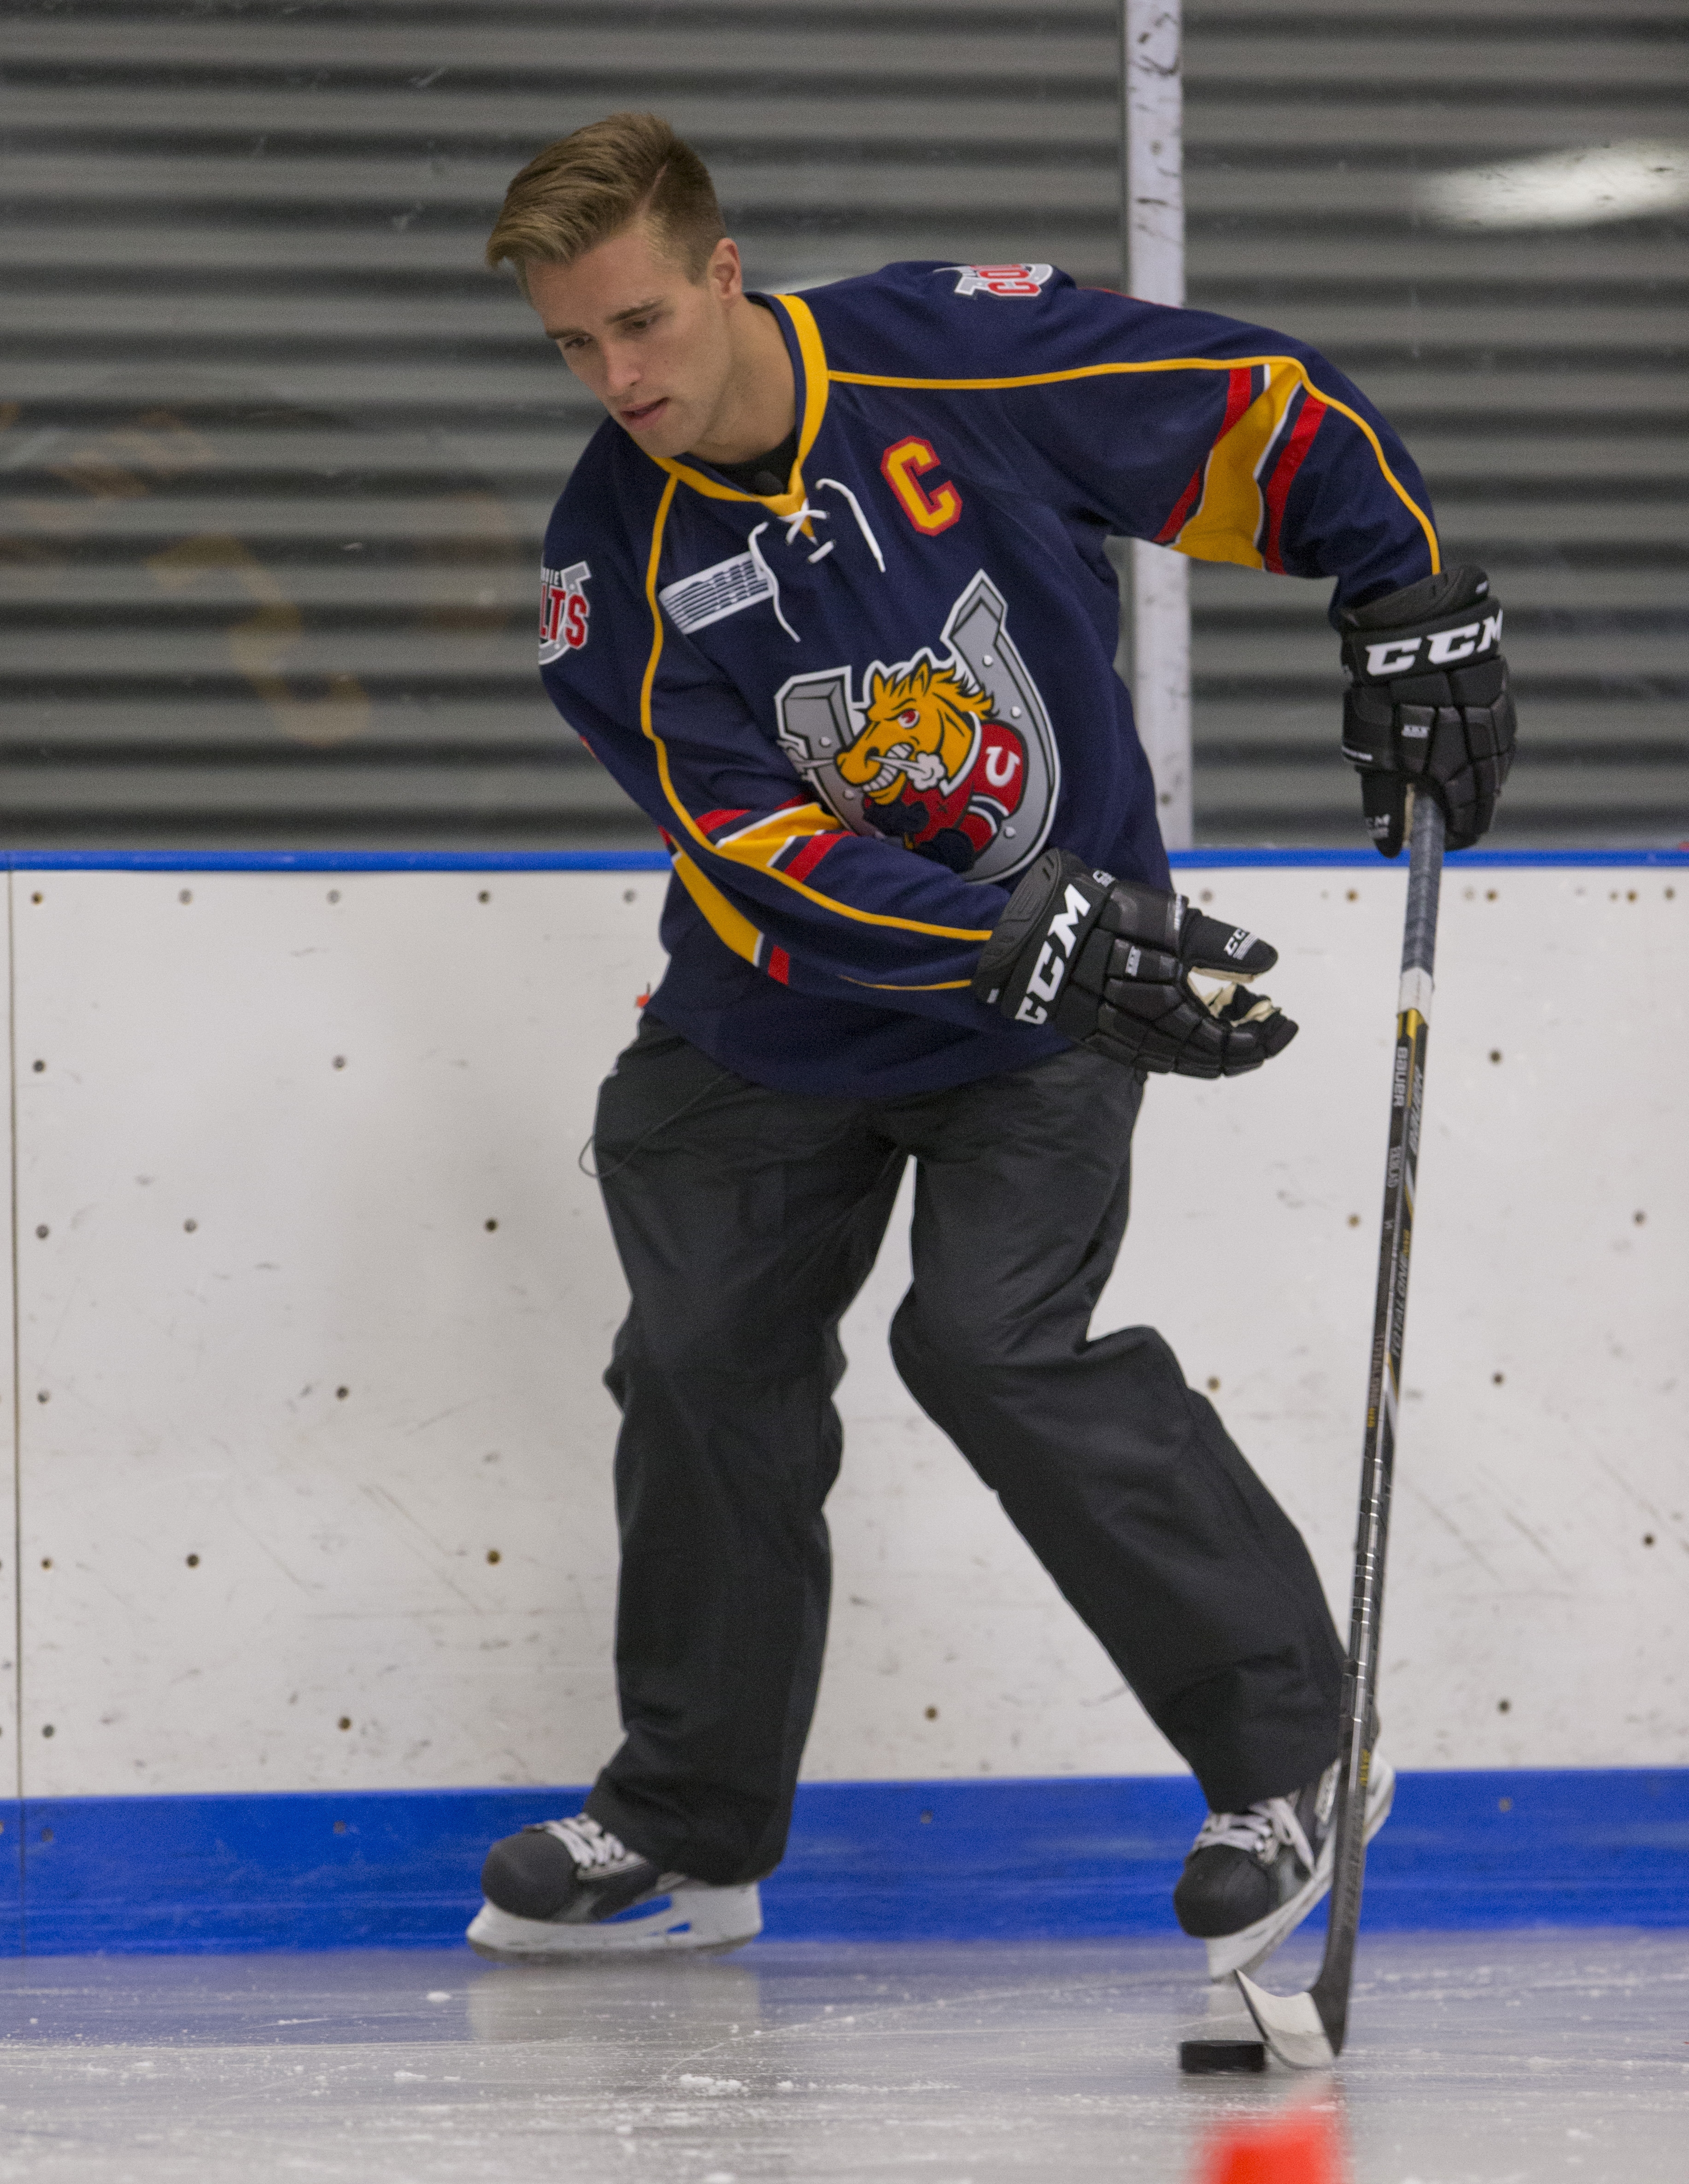 By most accounts, defensemen Aaron Ekblad will be the first pick in tonight's NHL Draft, taken by the Florida Panthers.